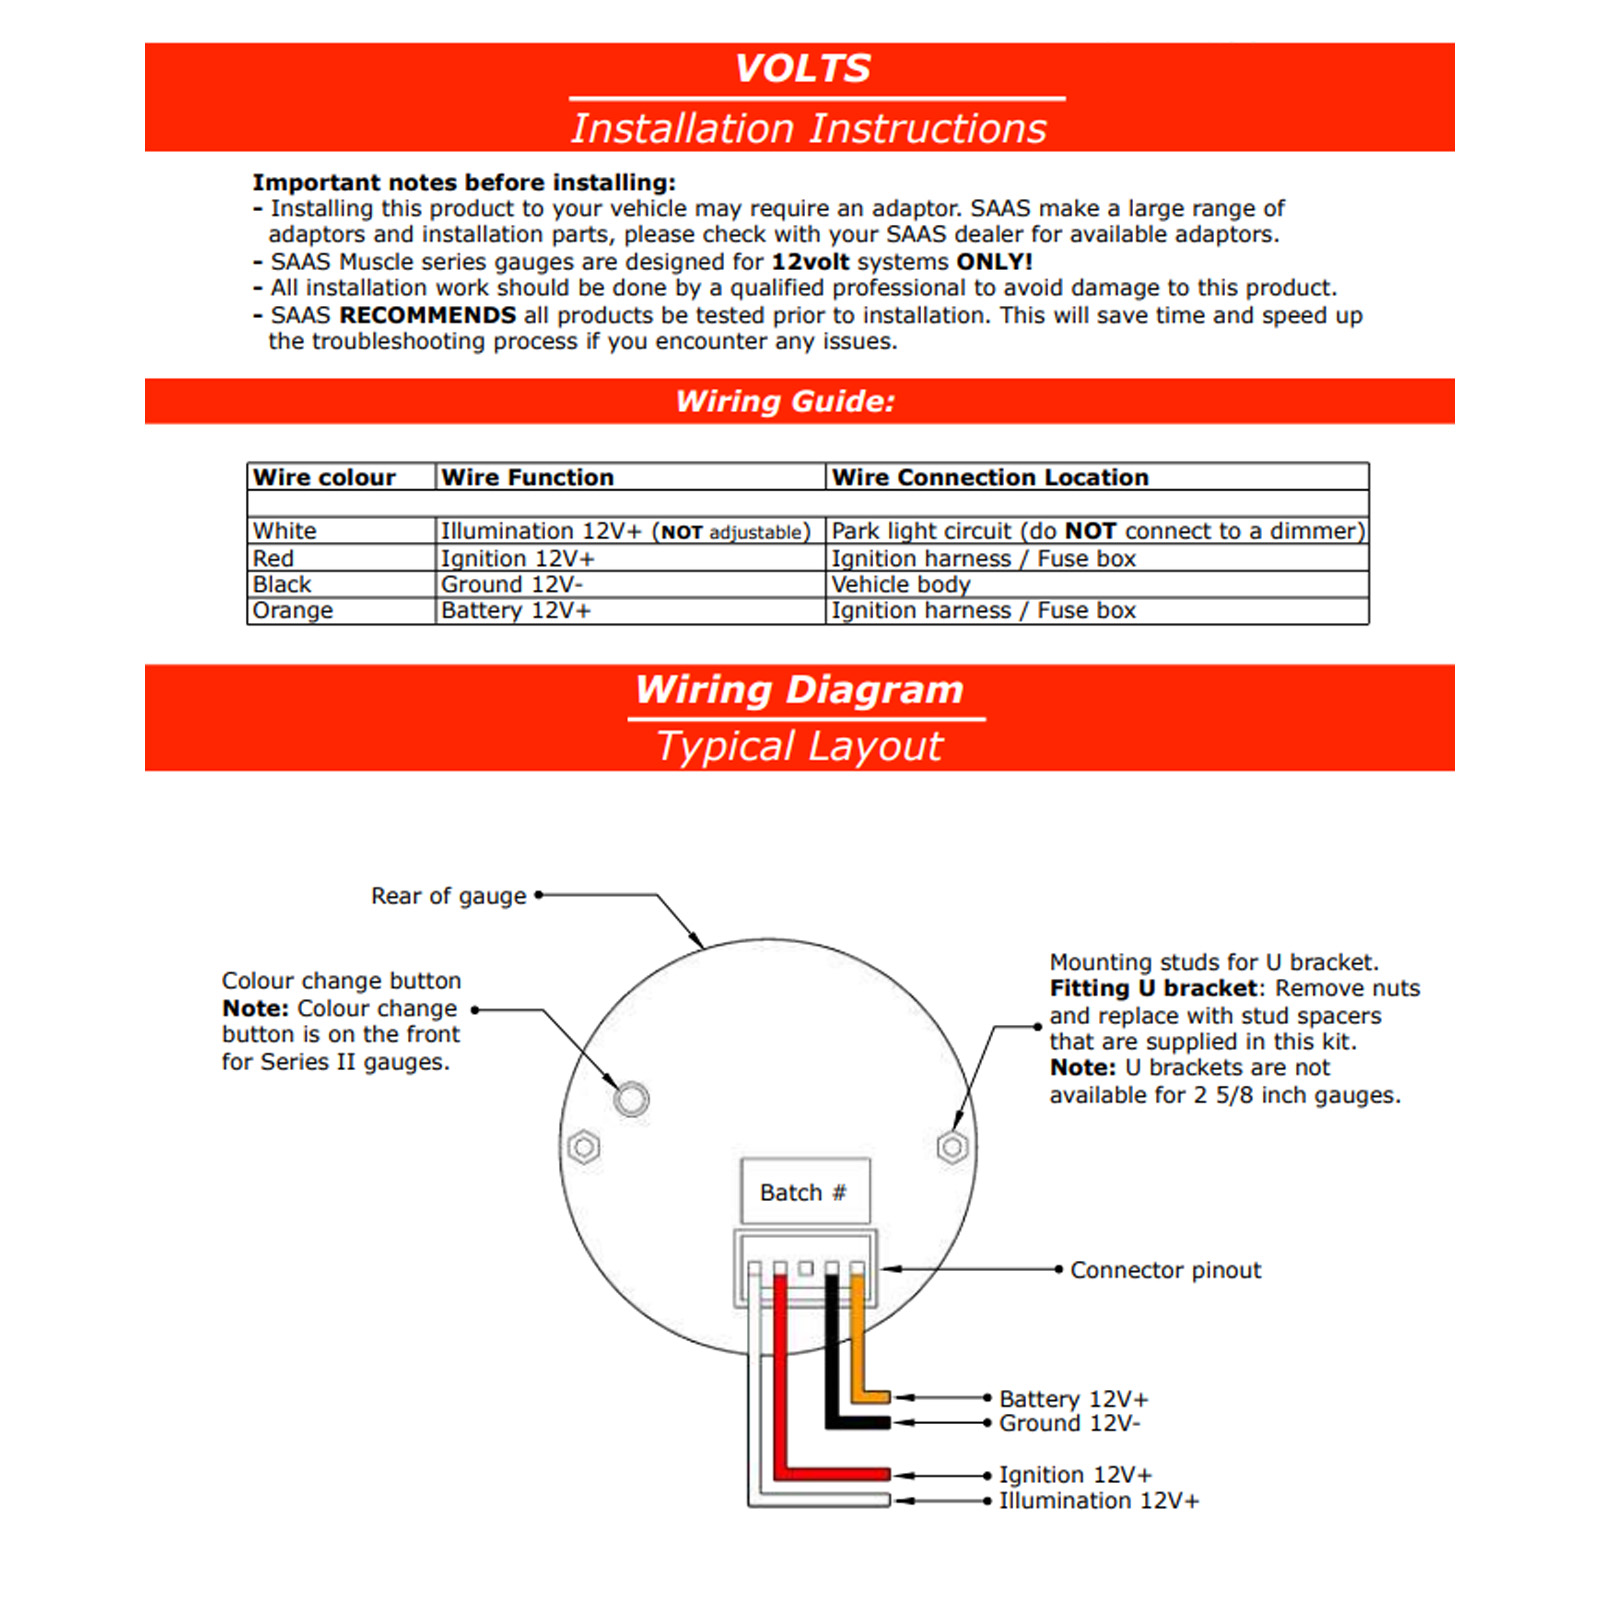 SG VLT52W saas volts 52mm gauge white face voltmeter volt saas volt gauge wiring diagram at edmiracle.co